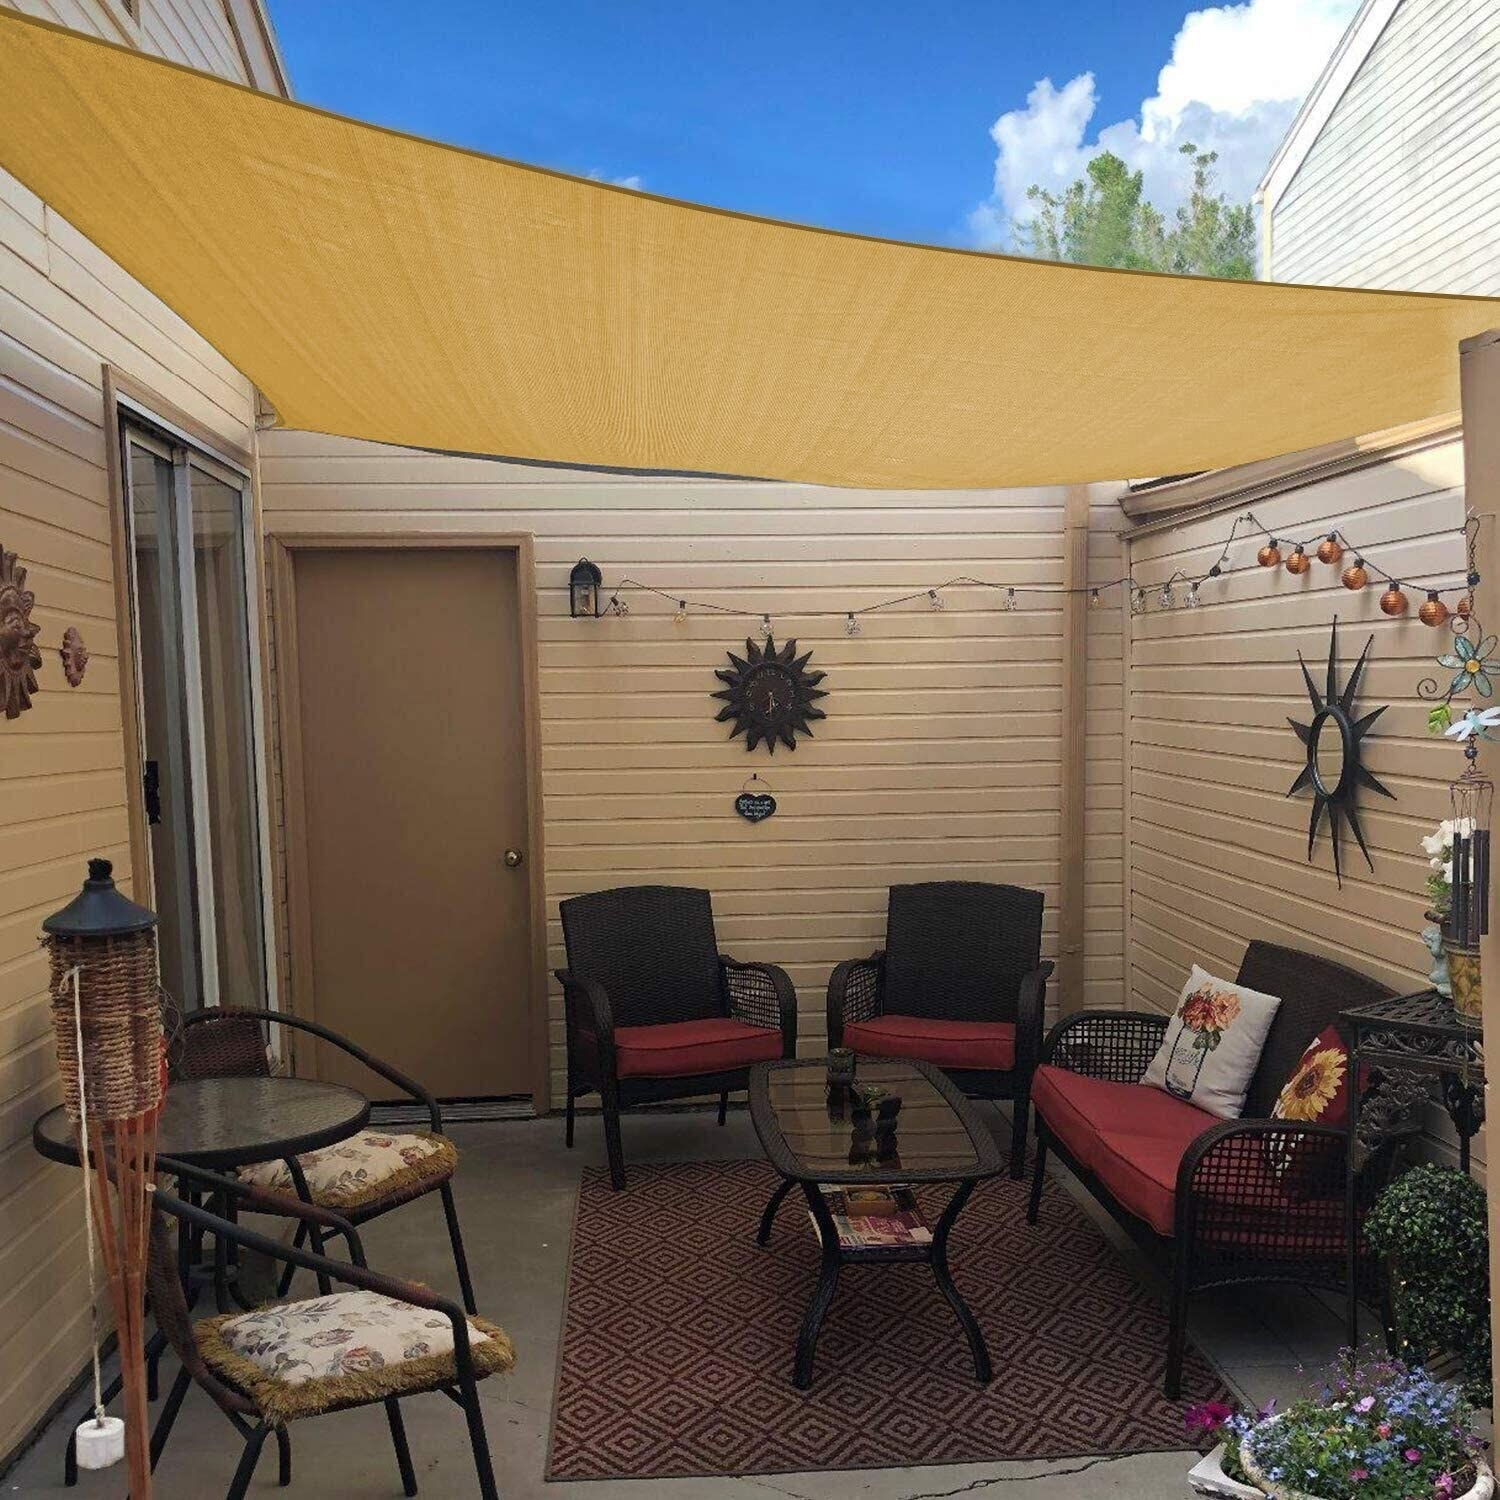 A beige canopy shade over a small outdoor porch